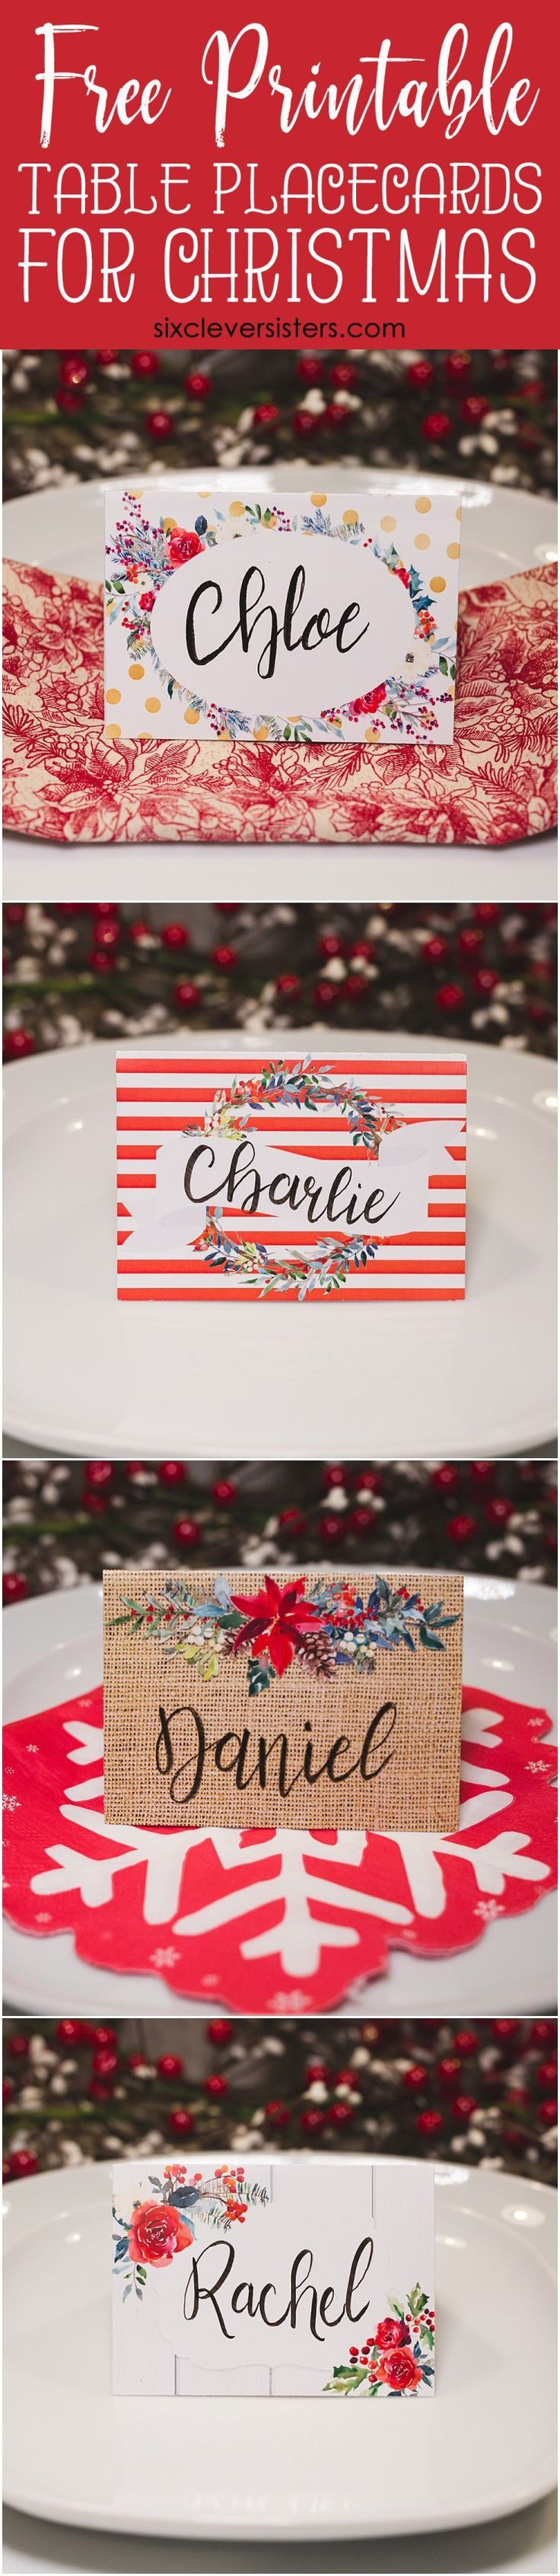 Christmas Table Place Cards FREE PRINTABLE